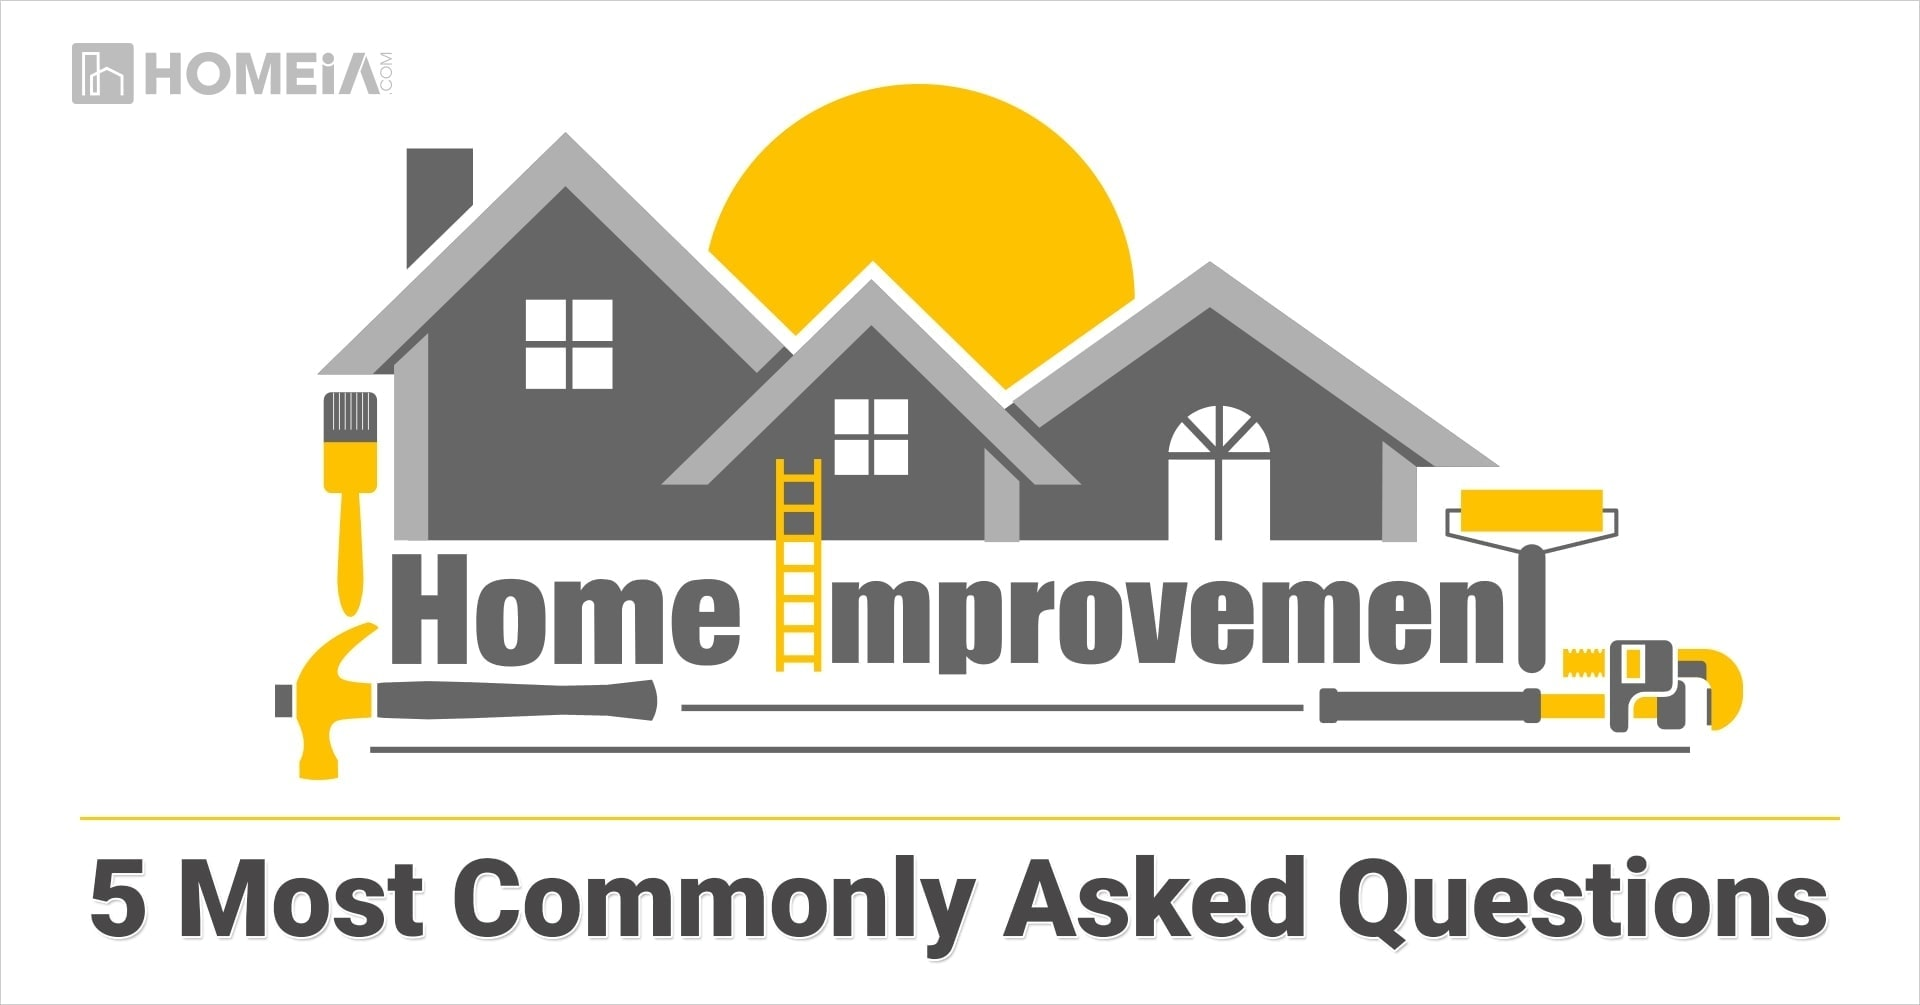 Home Improvement: 5 Most Commonly Asked Questions